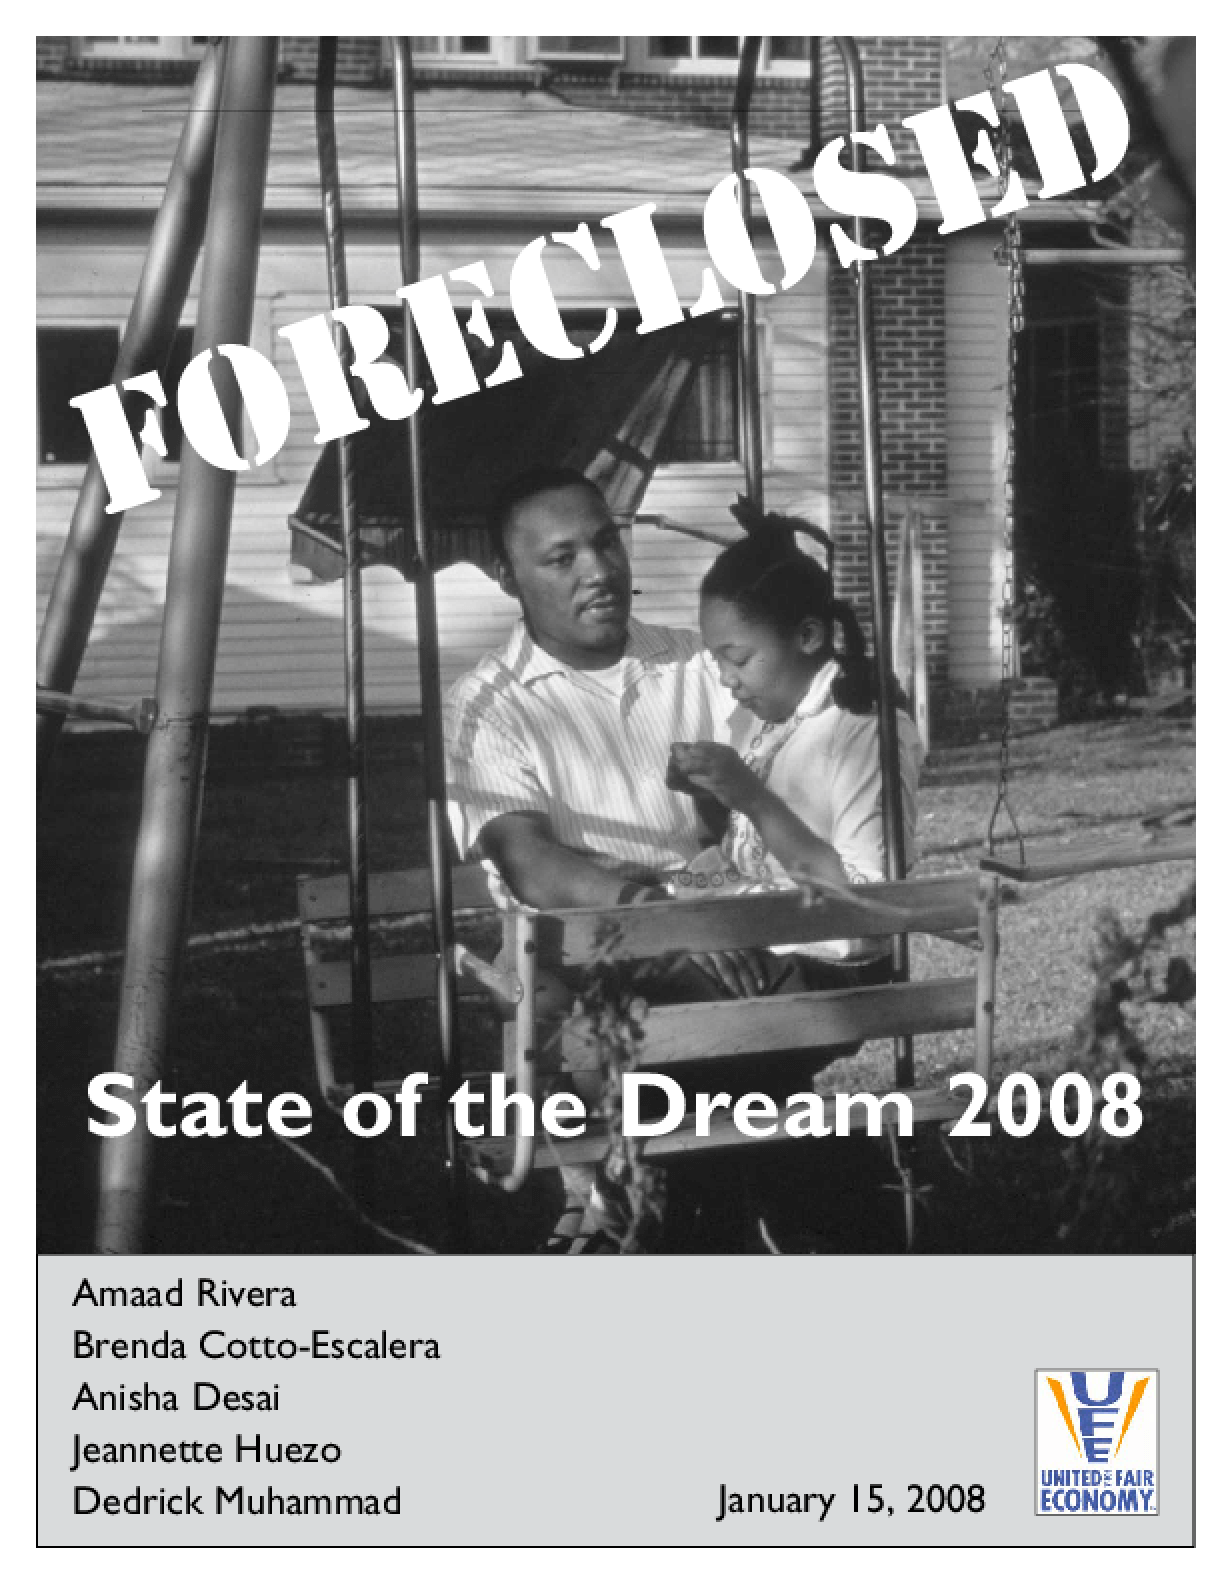 State of the Dream 2008: Foreclosed